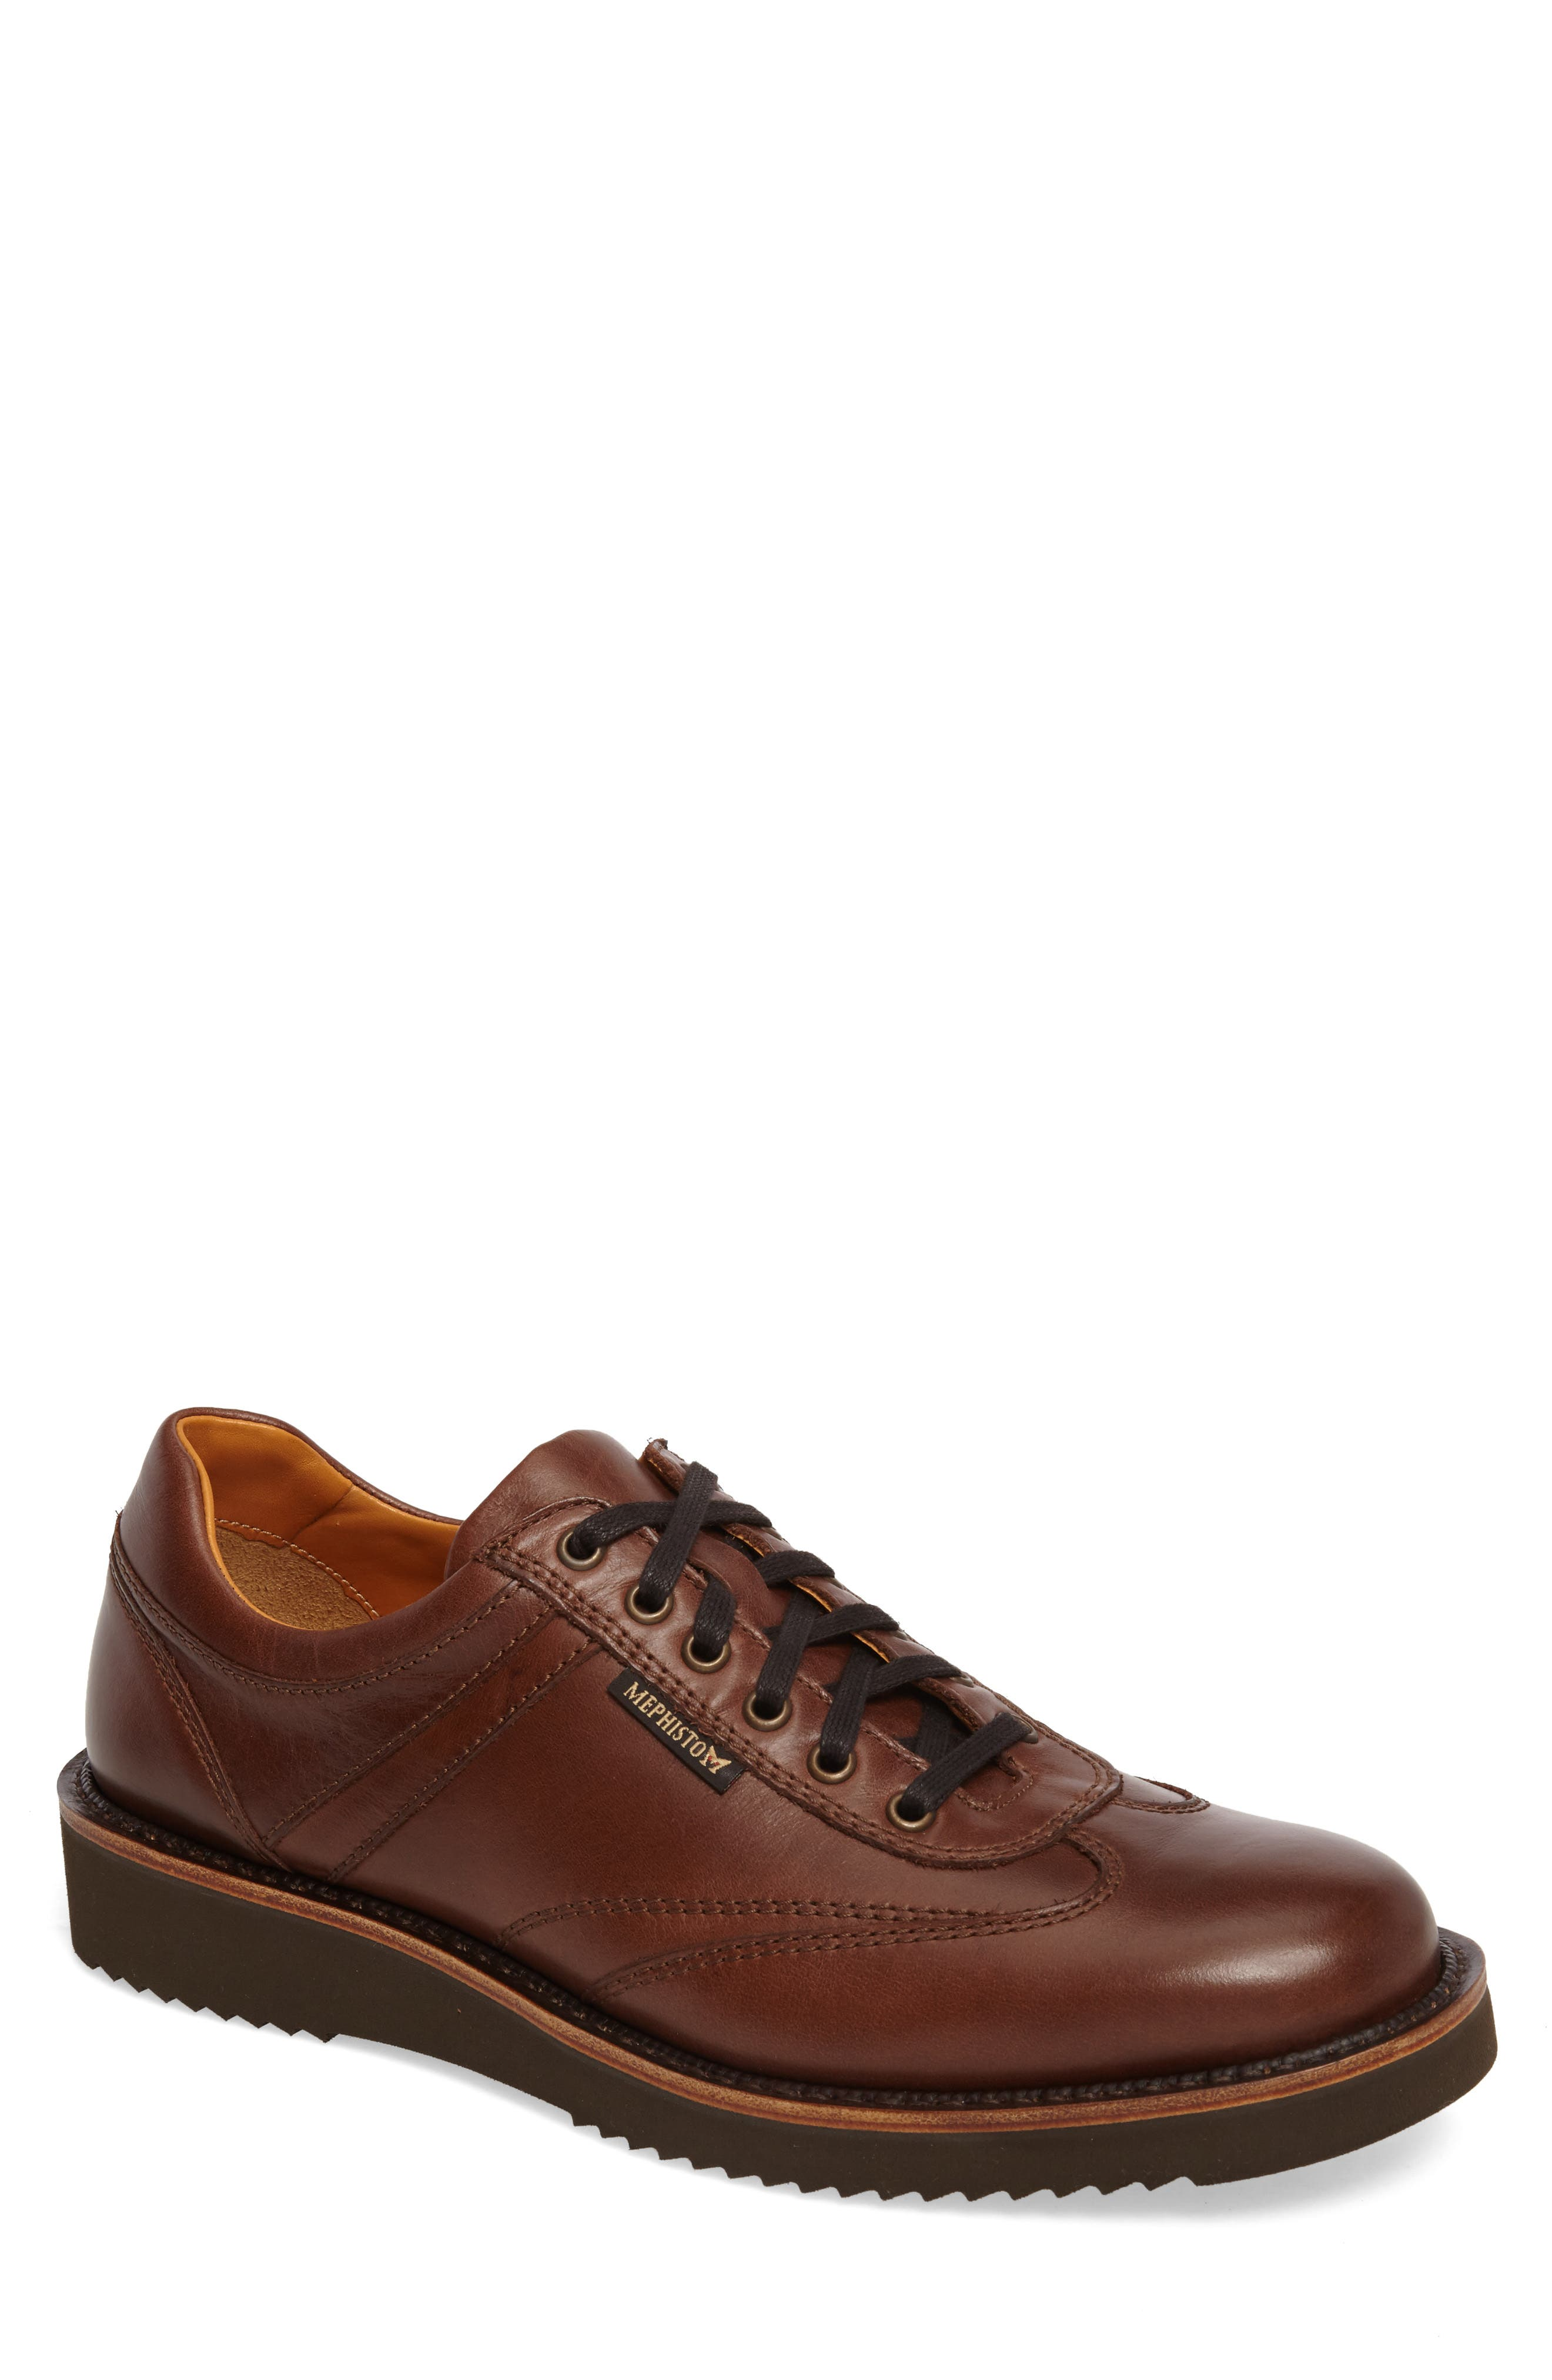 Adriano Sneaker,                         Main,                         color, CHESTNUT LEATHER